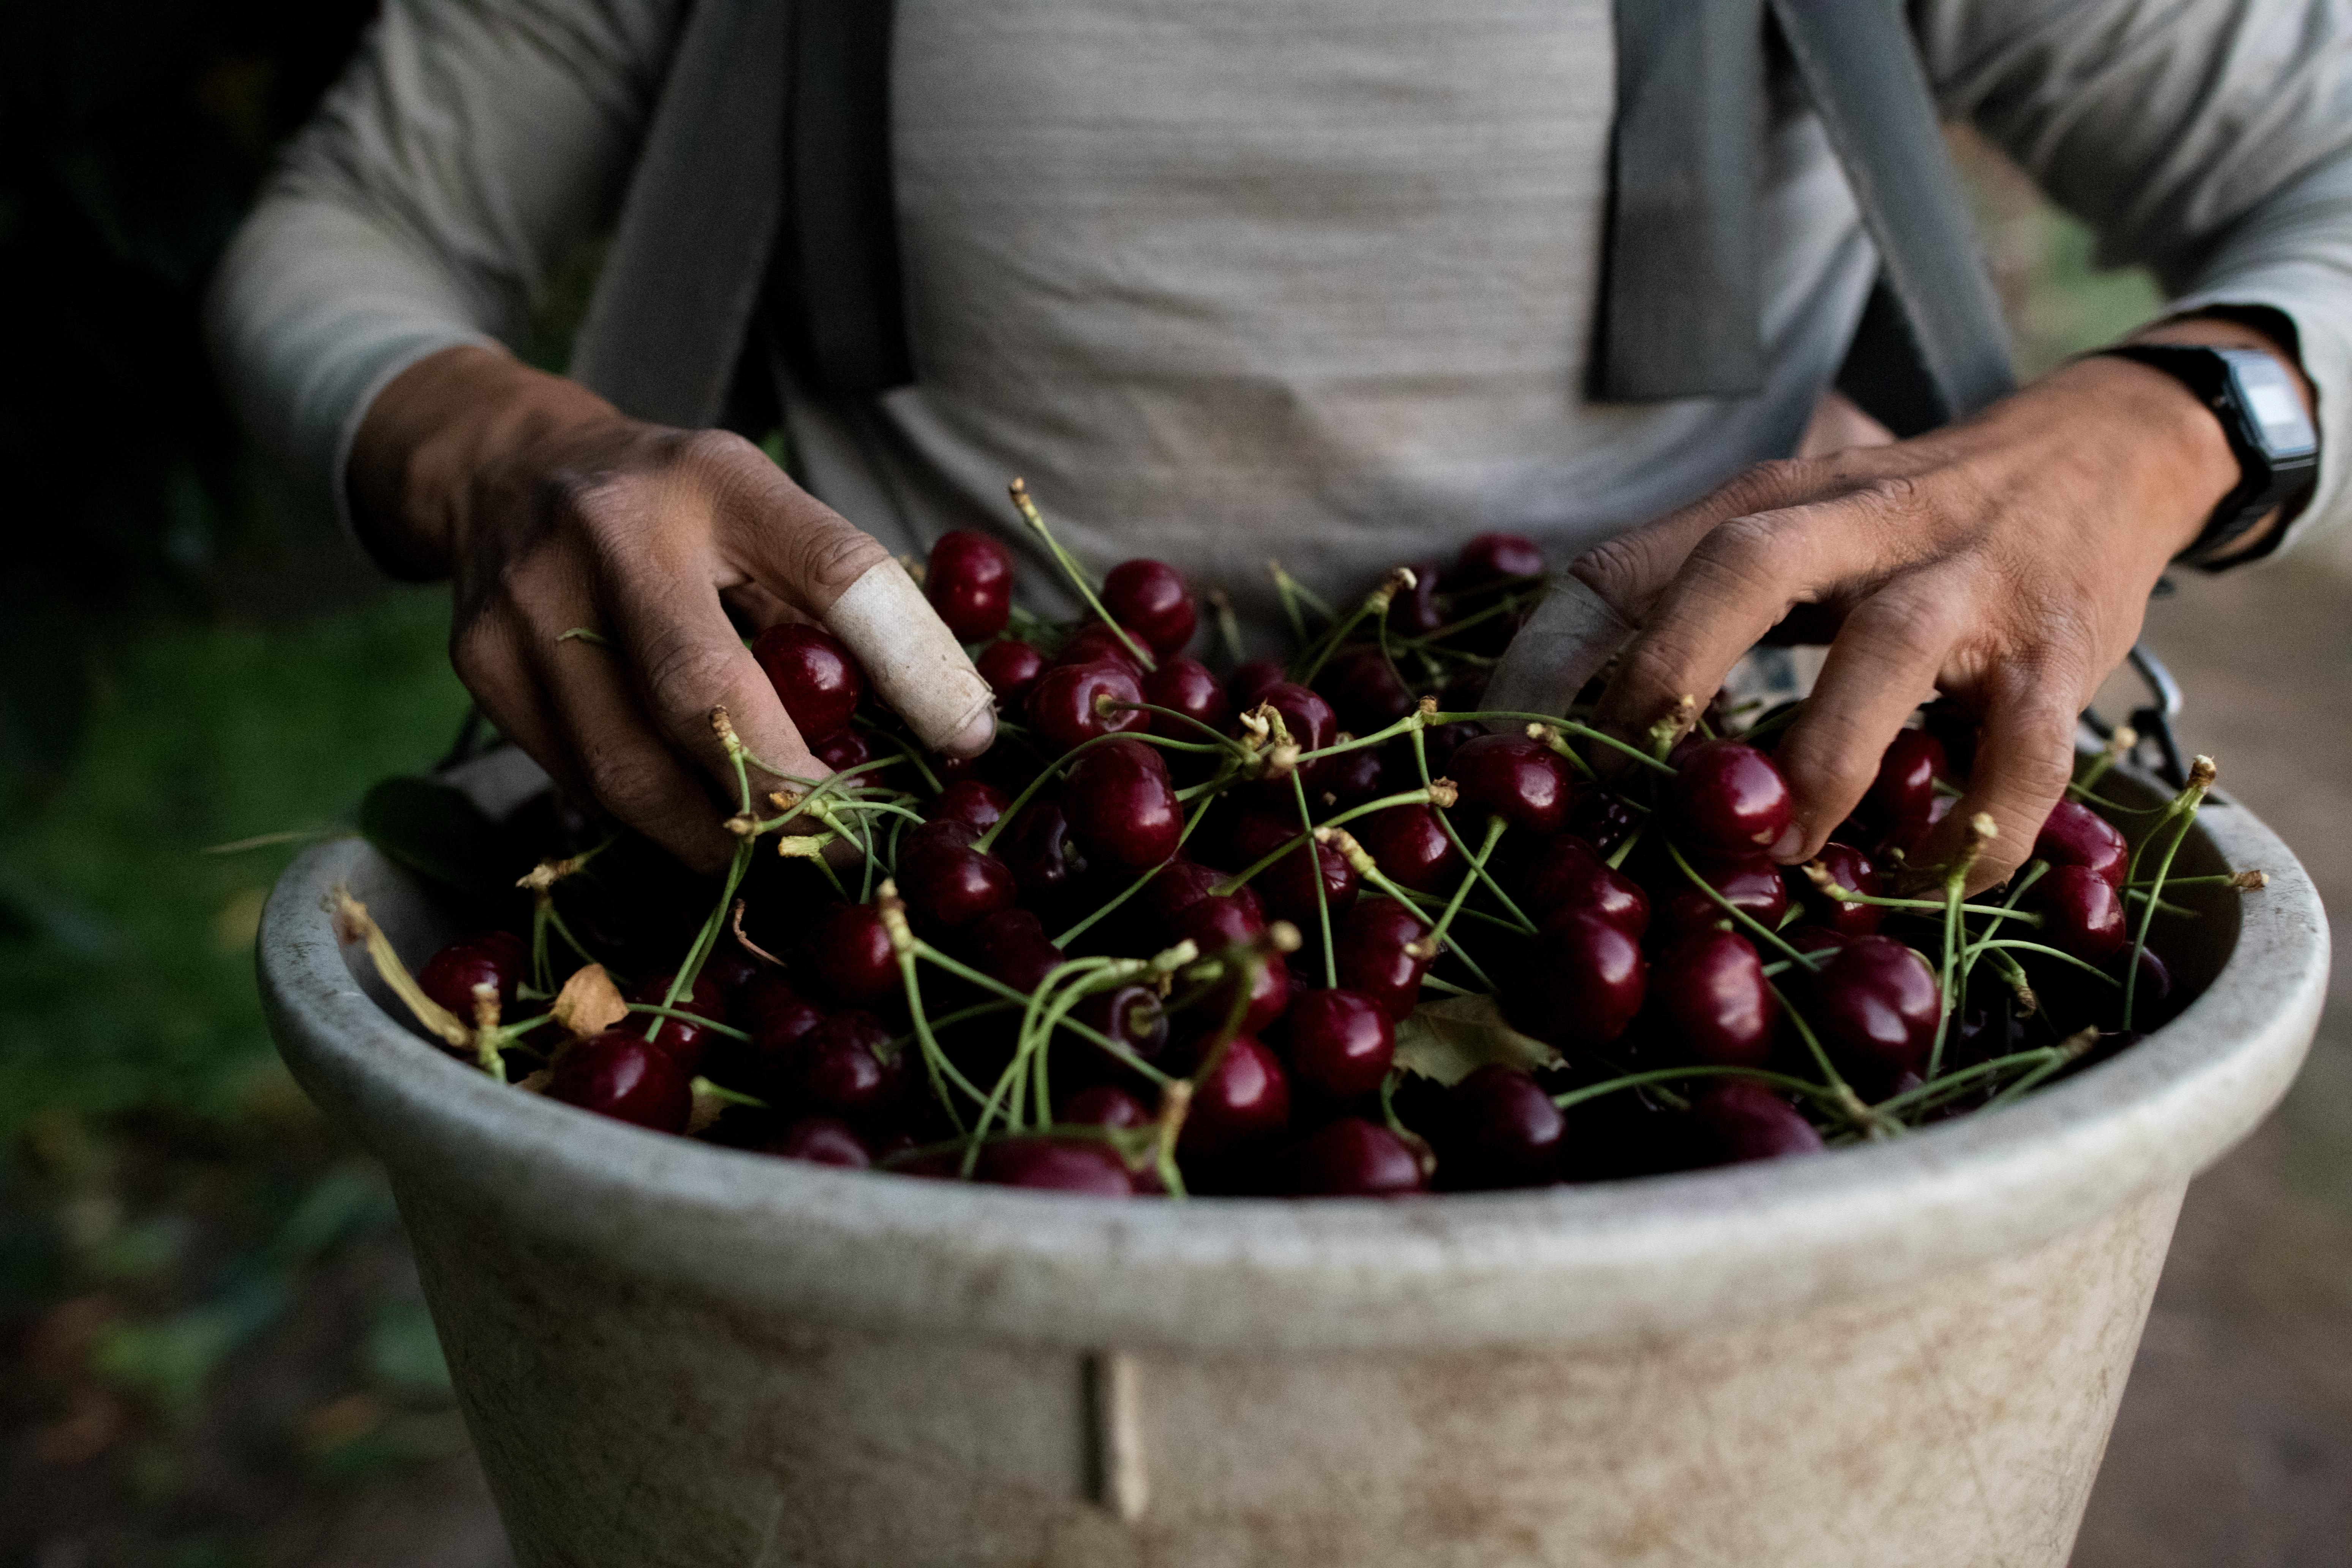 Jorge Bacquez, 29, holds the first of five, 330-pound bins of cherries he picked on Thursday, August 2, 2018, at Jake the Gutzwiler family orchard in Wenatchee, Wash. (Tyler Tjomsland / The Spokesman-Review)